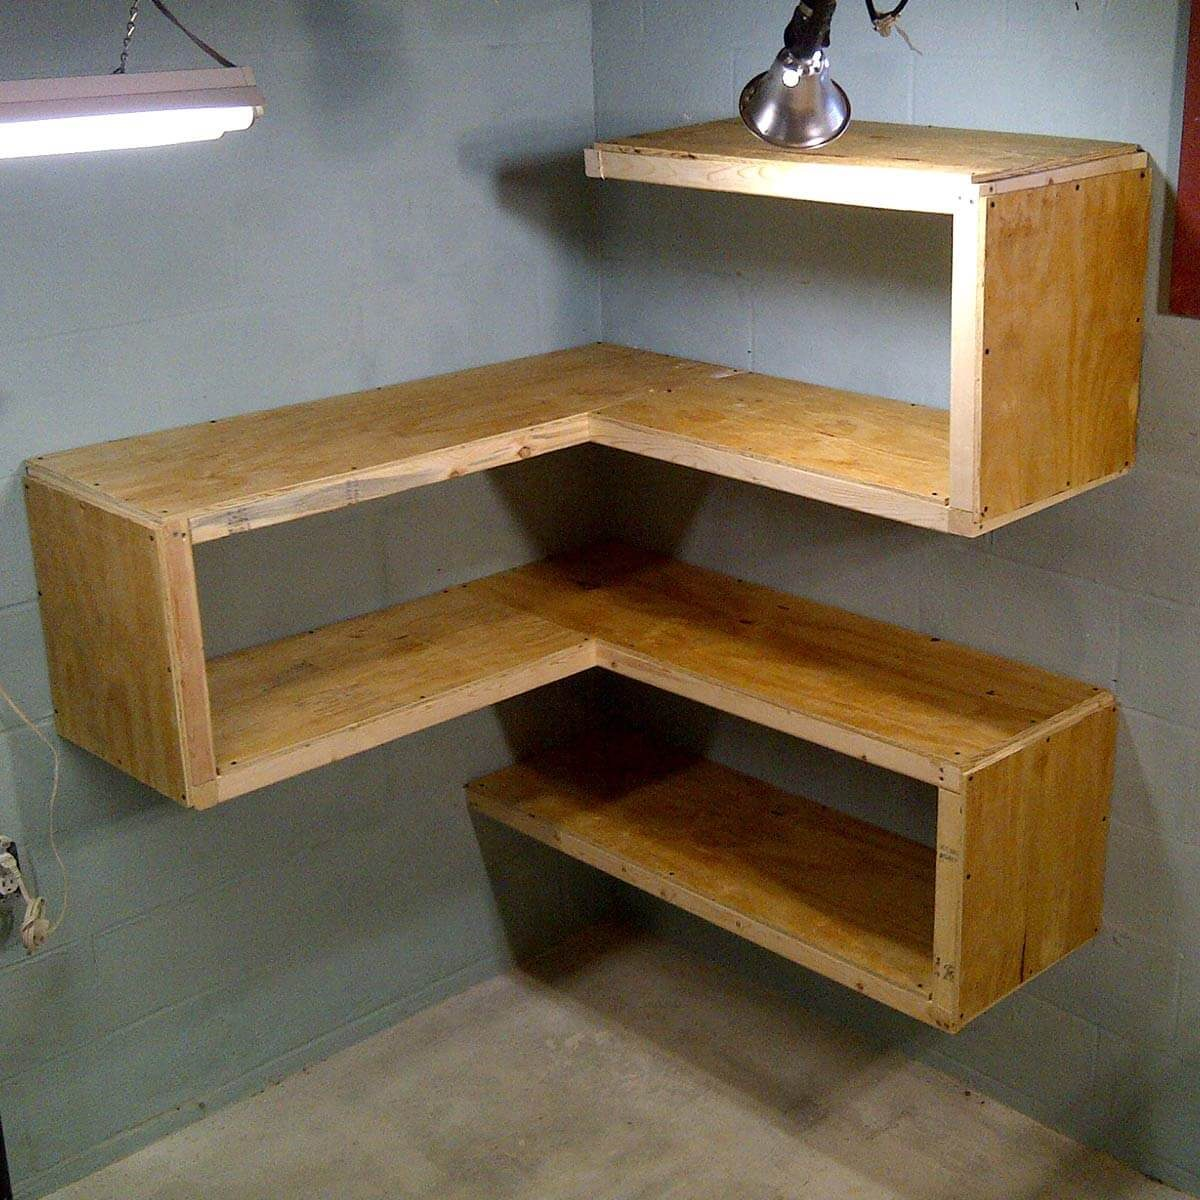 with plywood furniture